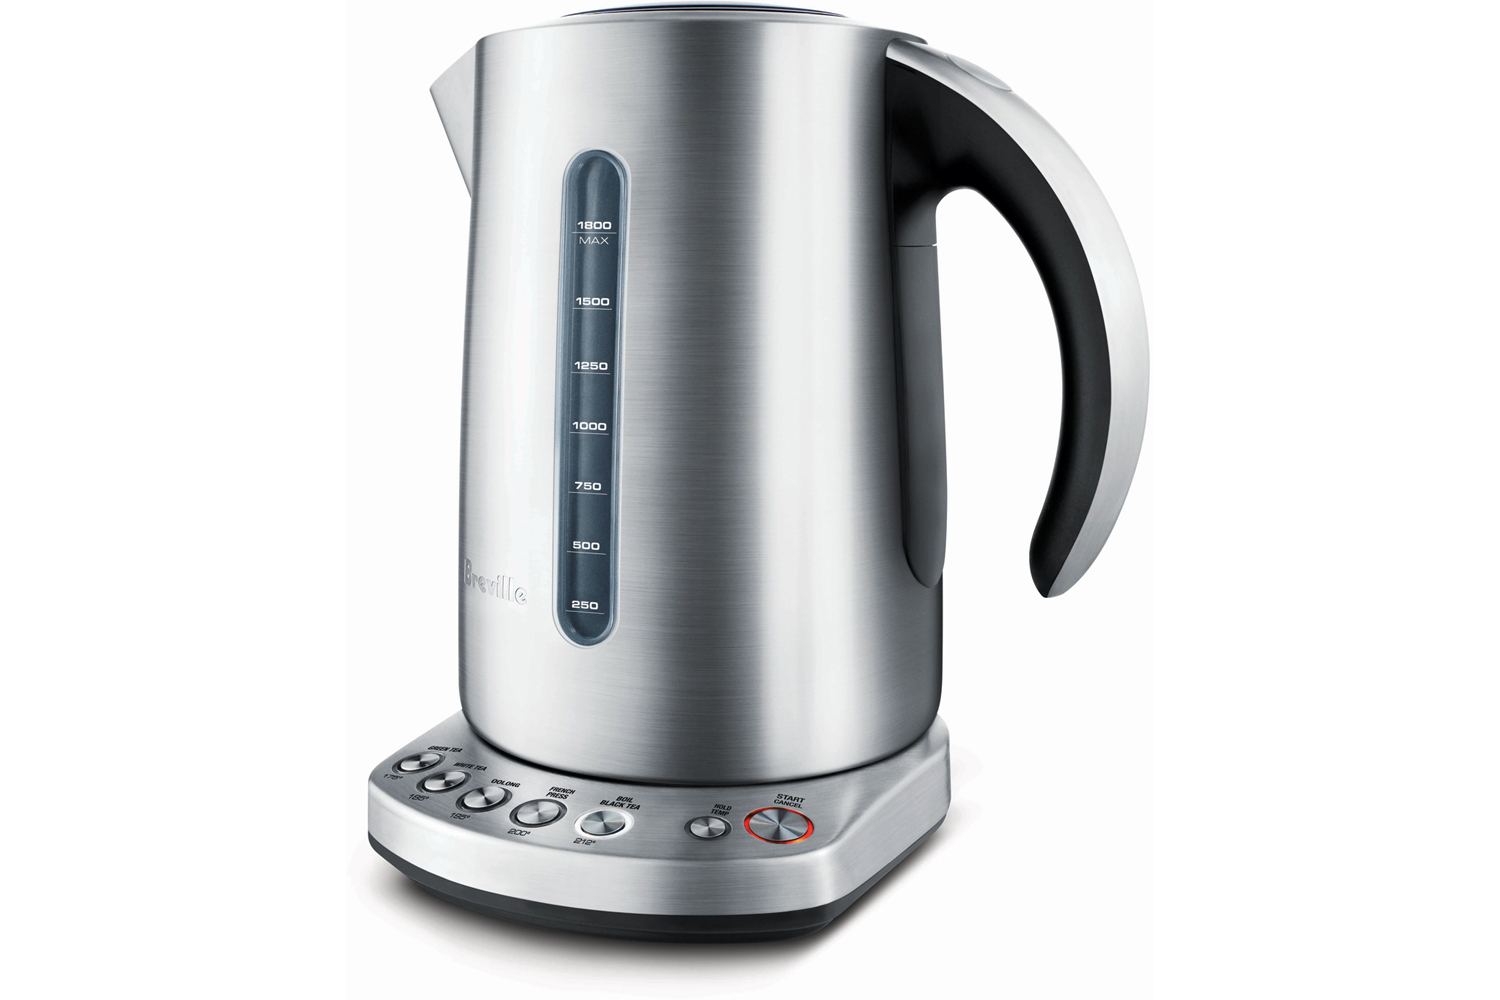 Breville Variable Temperature Water Kettle - 2 qt.